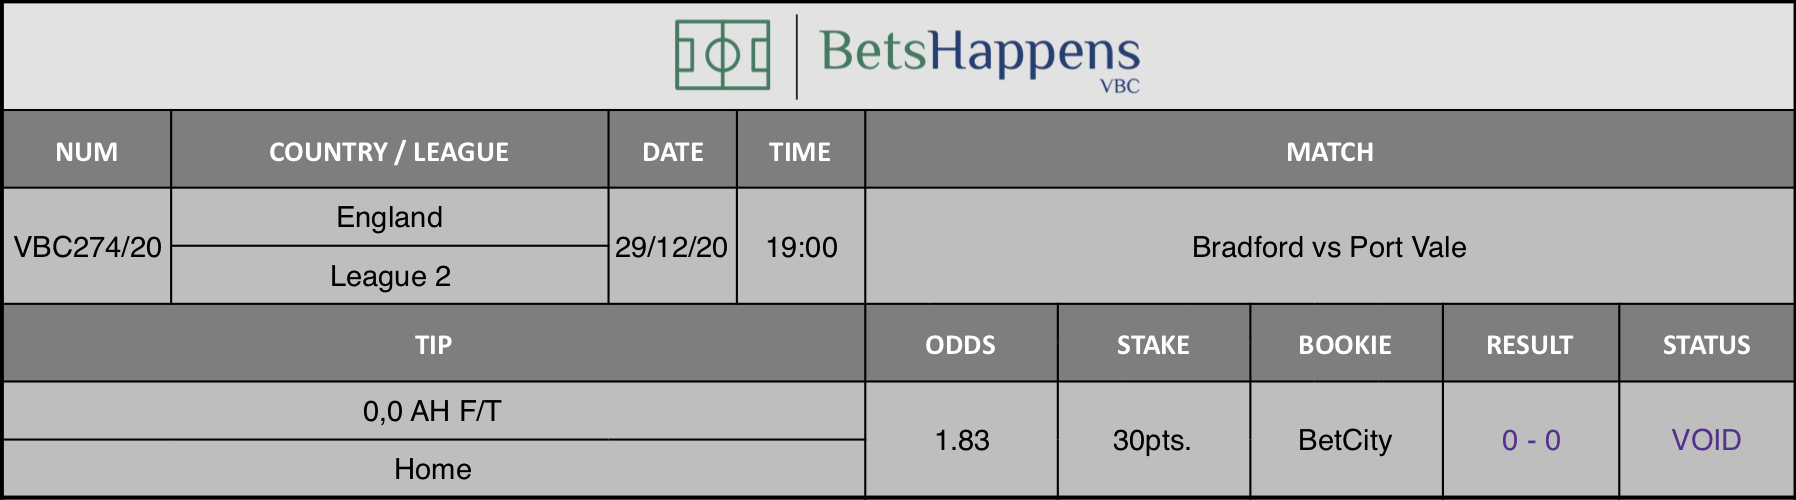 Results of our tip for the Bradford vs Port Vale match where 0,0 AH F/T  Home is recommended.